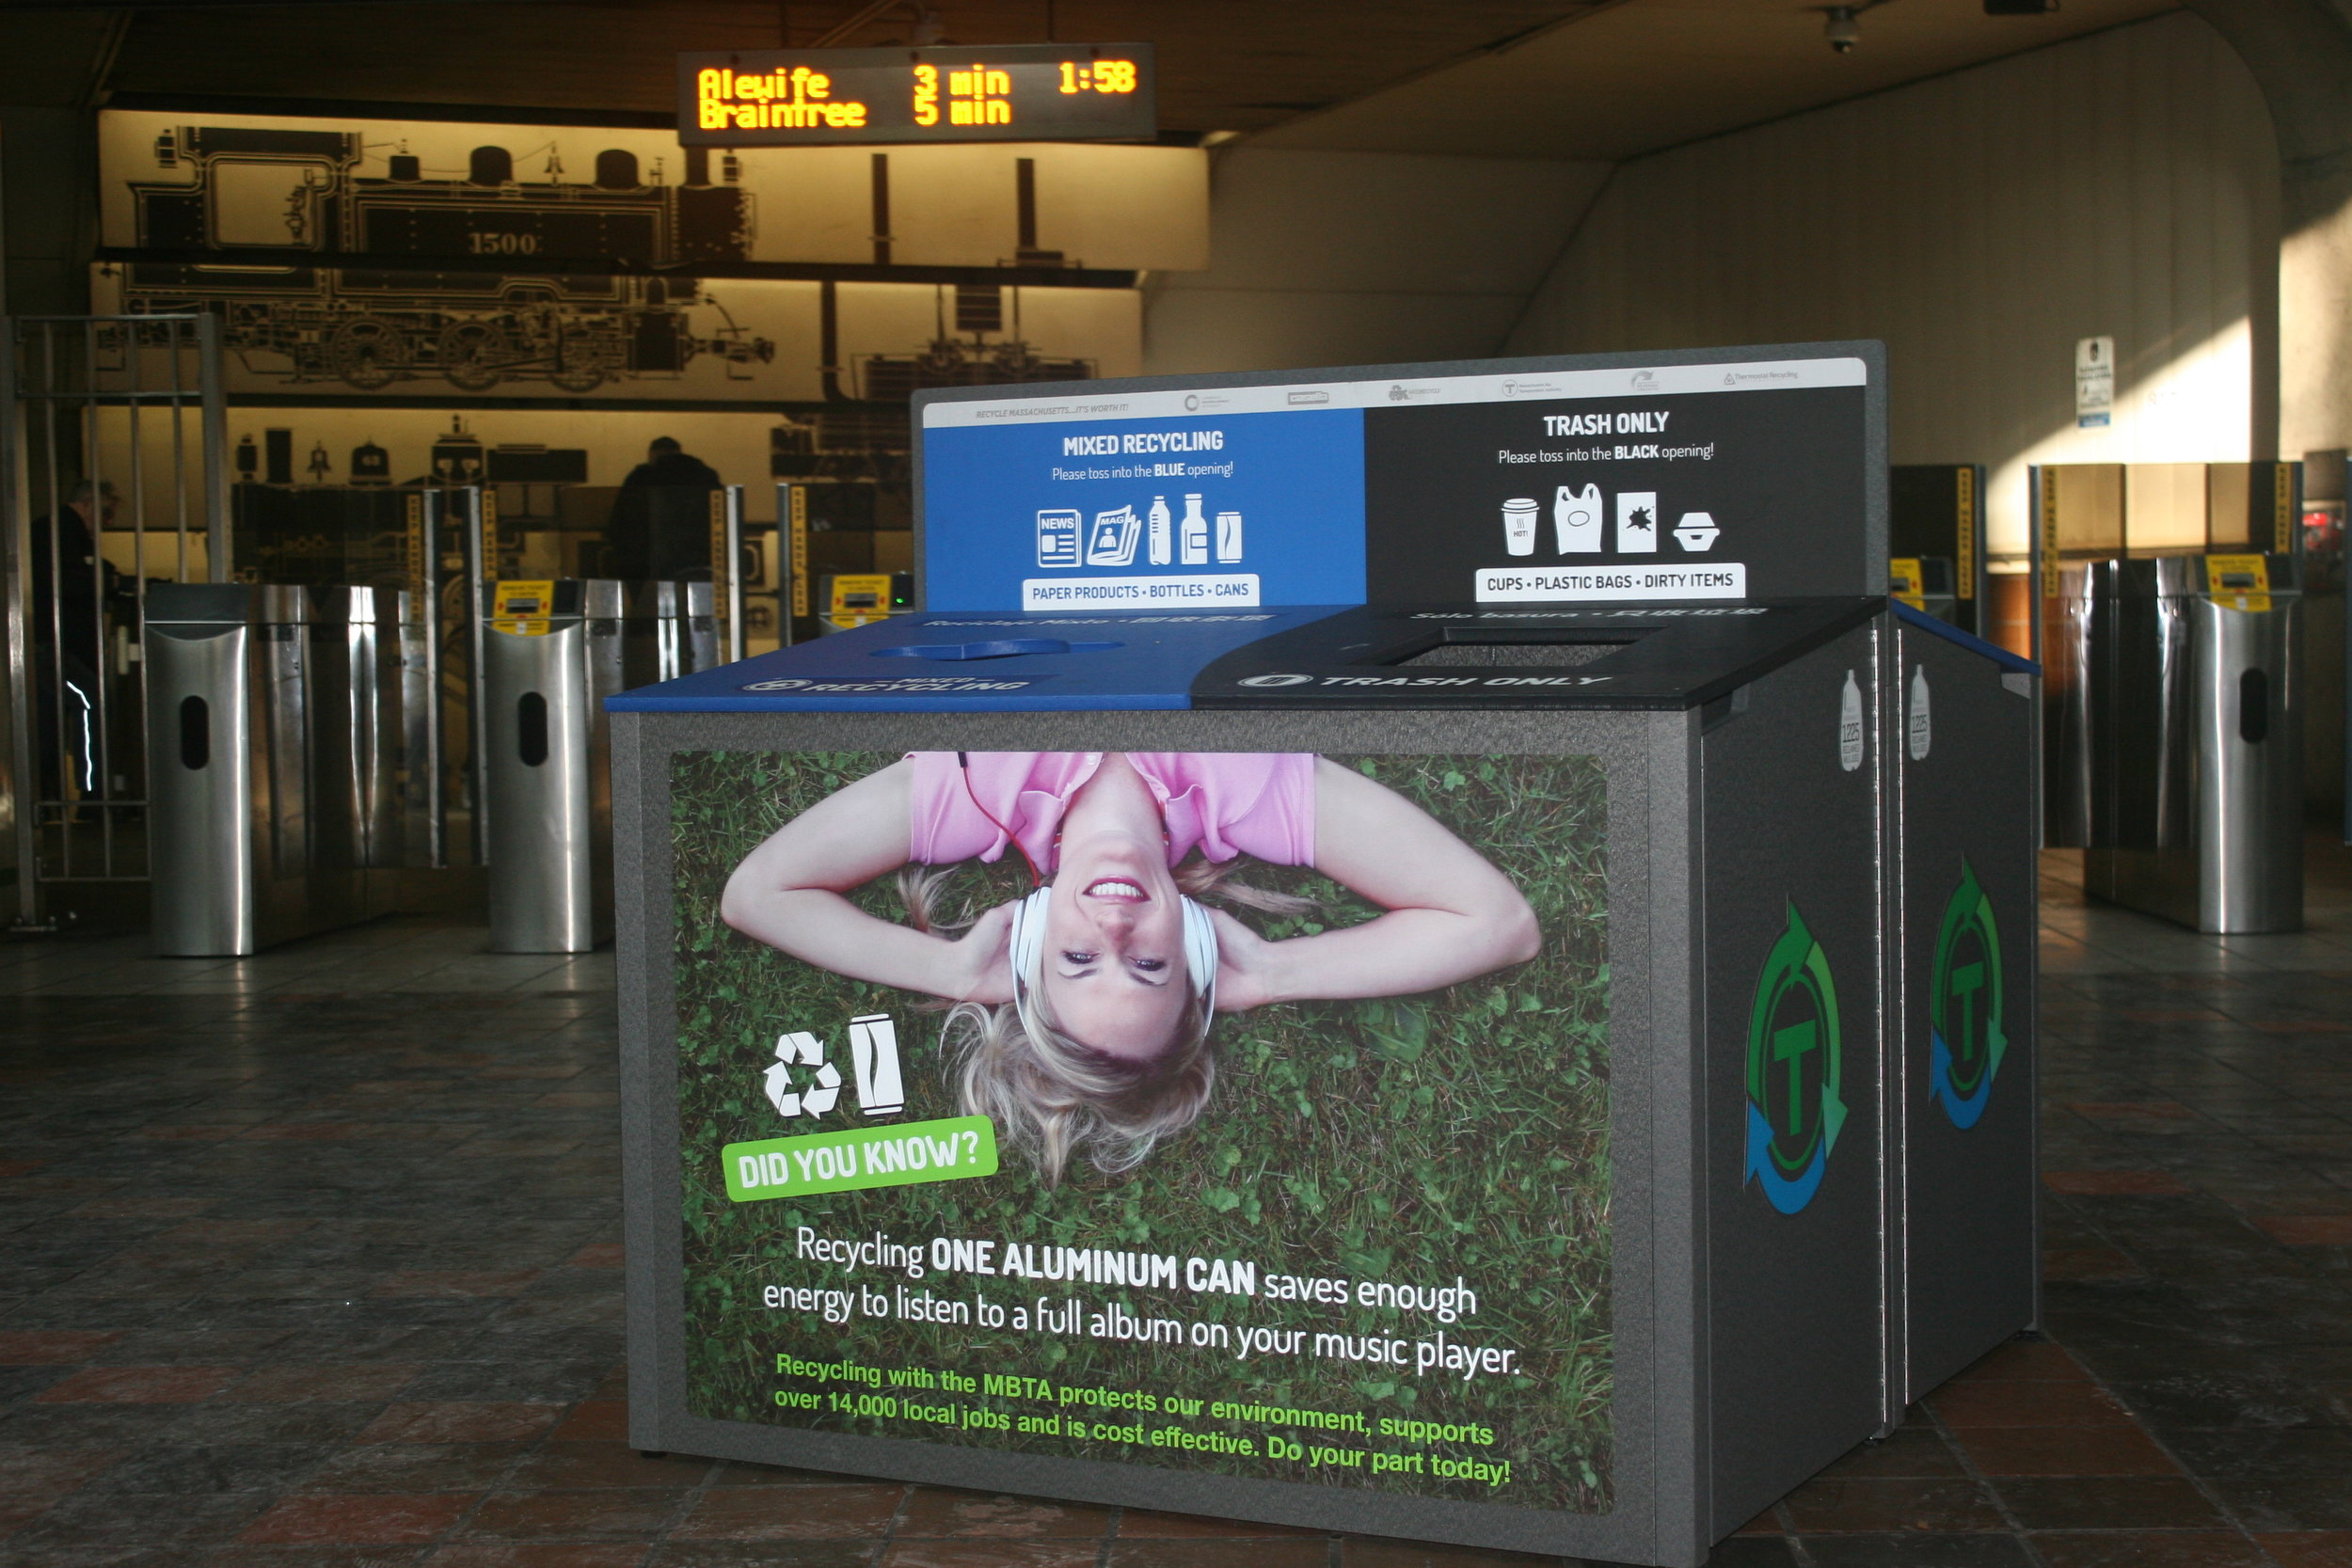 Mass Recycles MBTA Single Stream Recyling Kiosks, 2016 Infrastructure Project